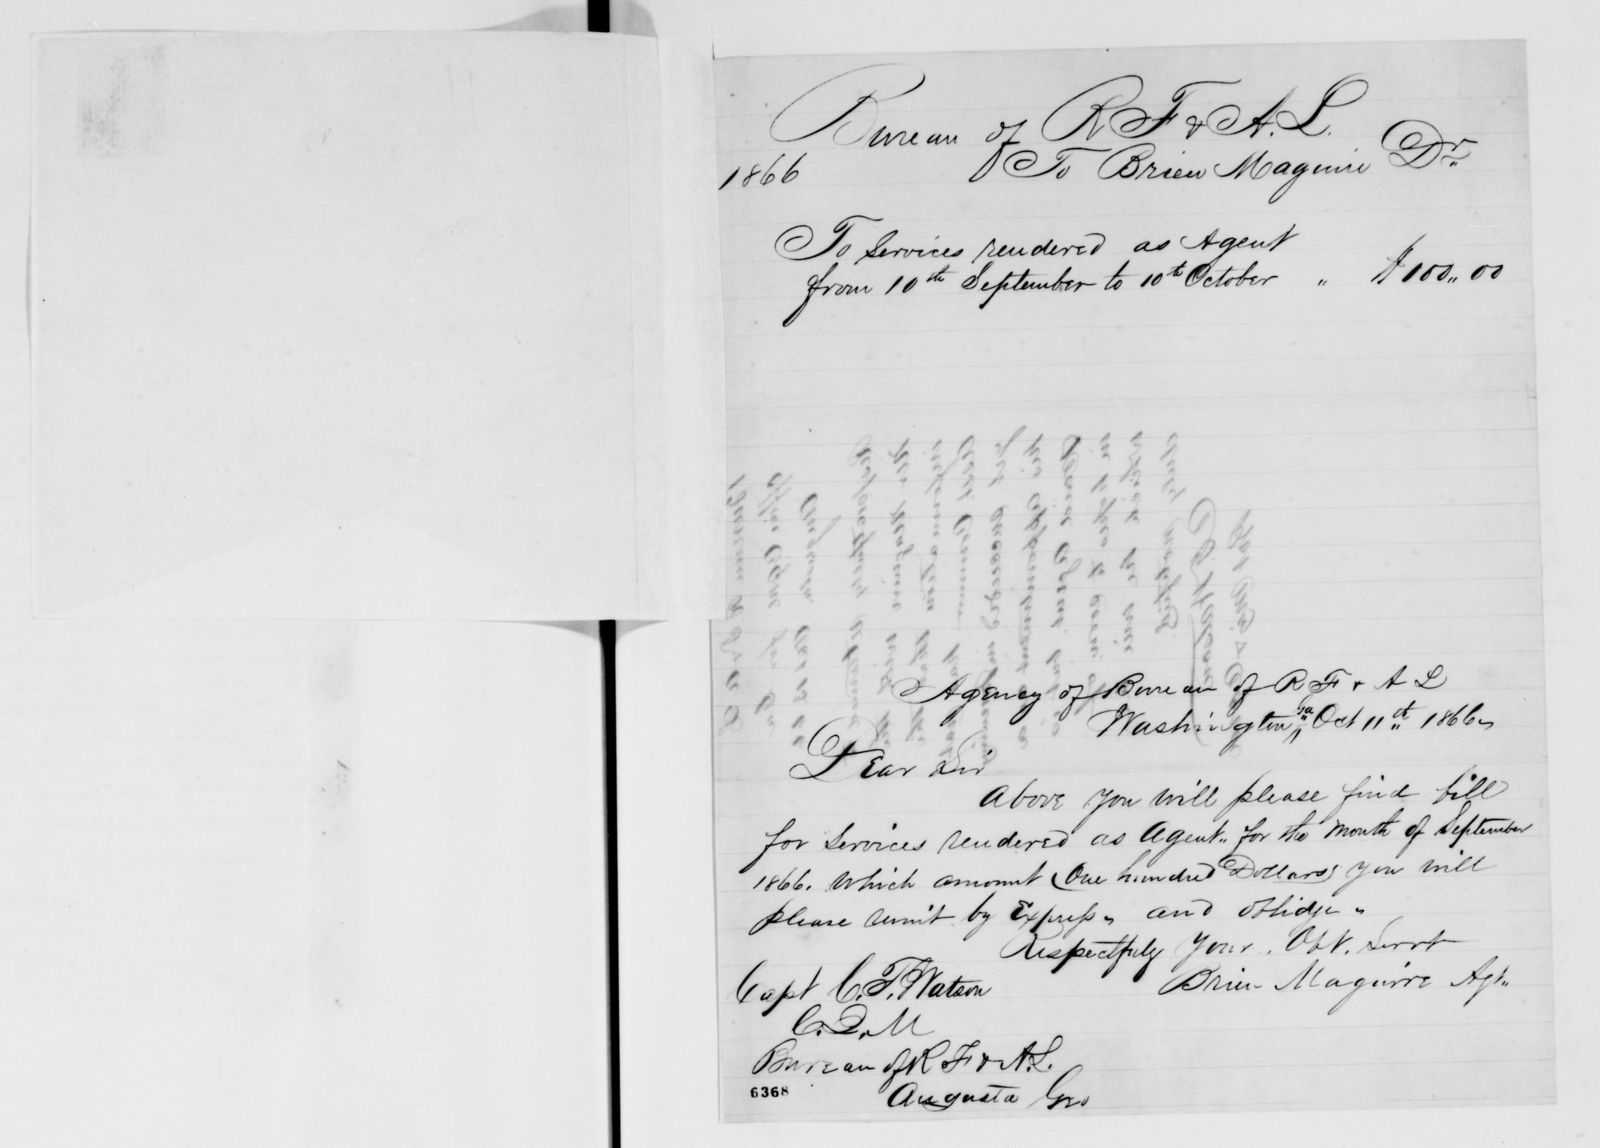 Alexander Hamilton Stephens Papers: General Correspondence, 1784-1886; 1866, Sept. 21-1867, Jan. 8